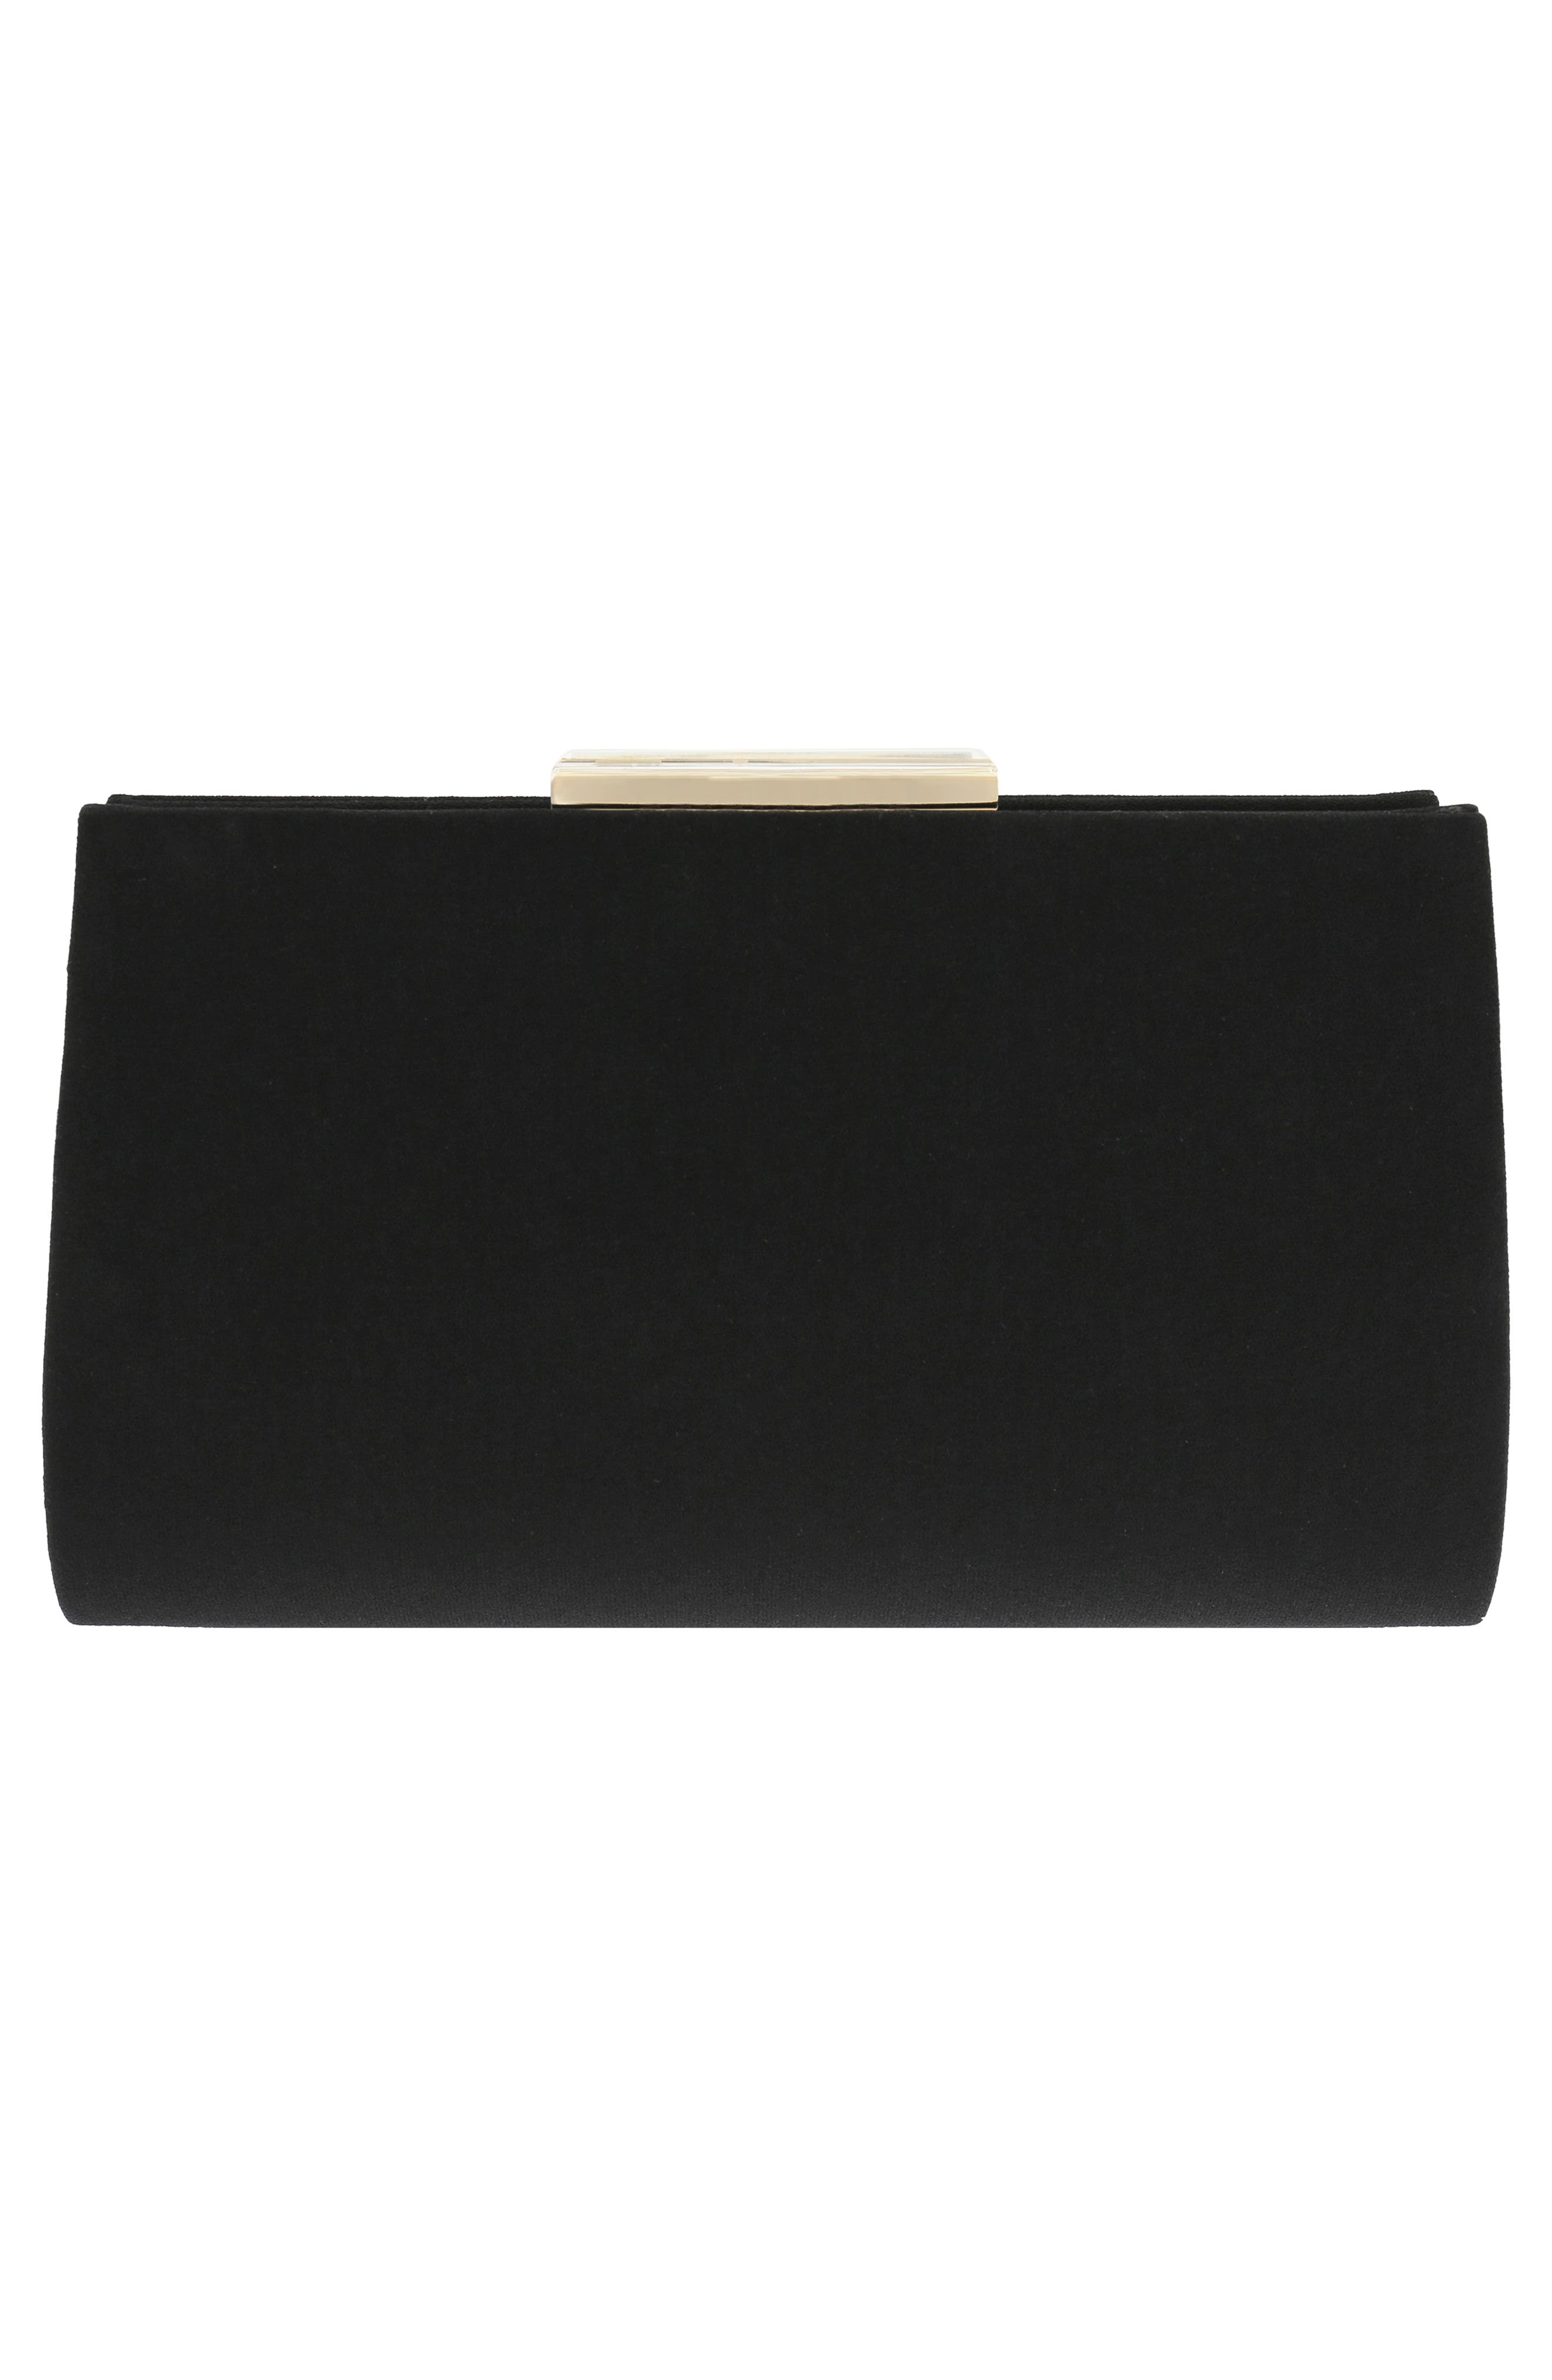 Generous Embellished Clutch,                             Alternate thumbnail 2, color,                             Black